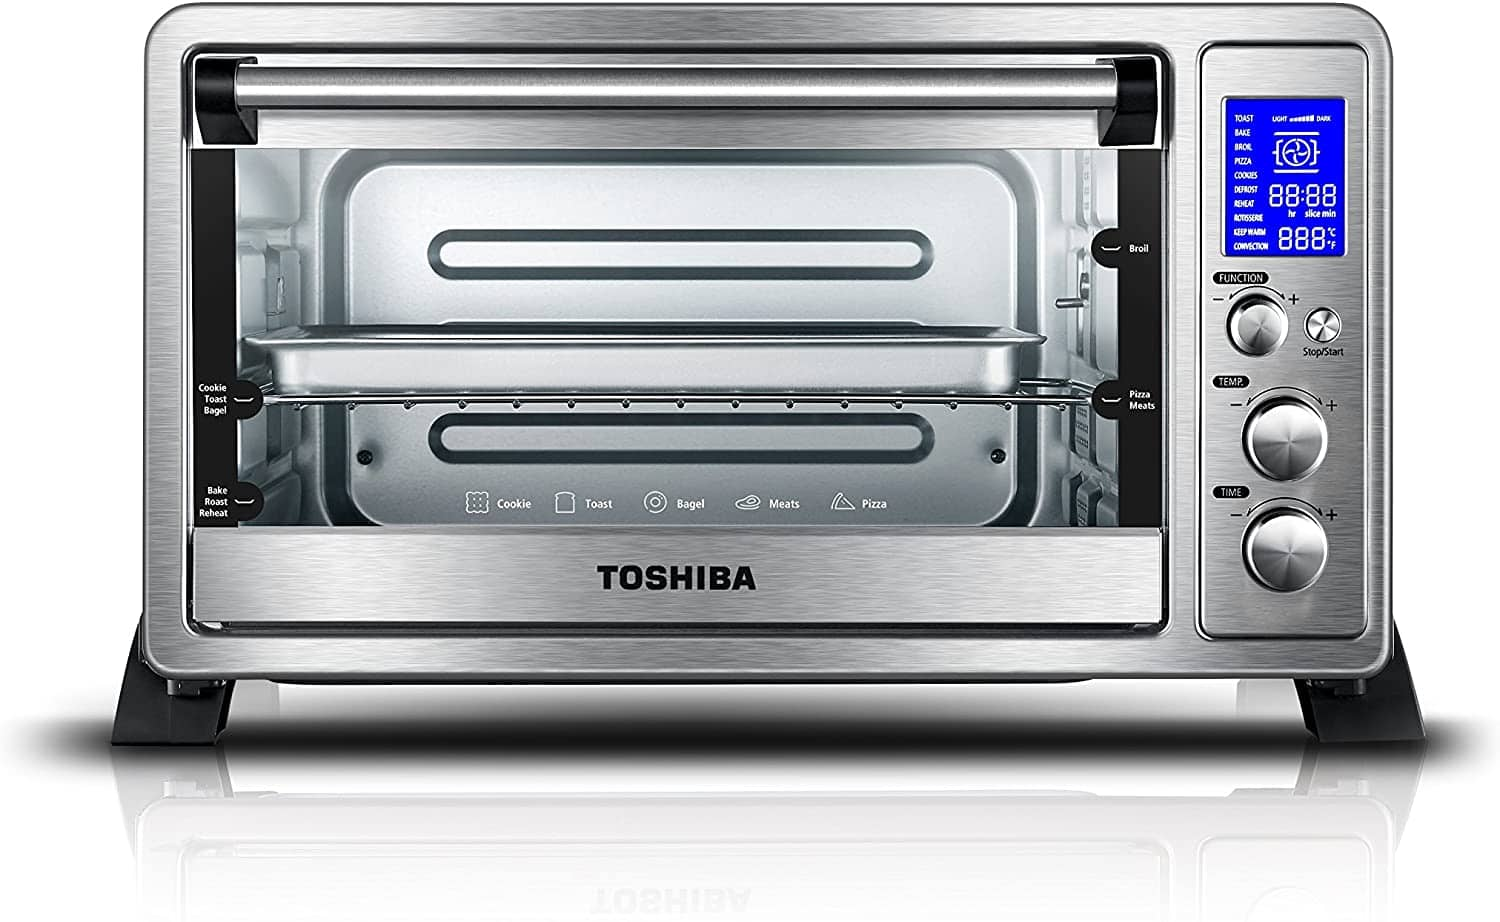 Toshiba AC25CEW Convection toaster oven $63.99 Free Shipping  - Black Steel